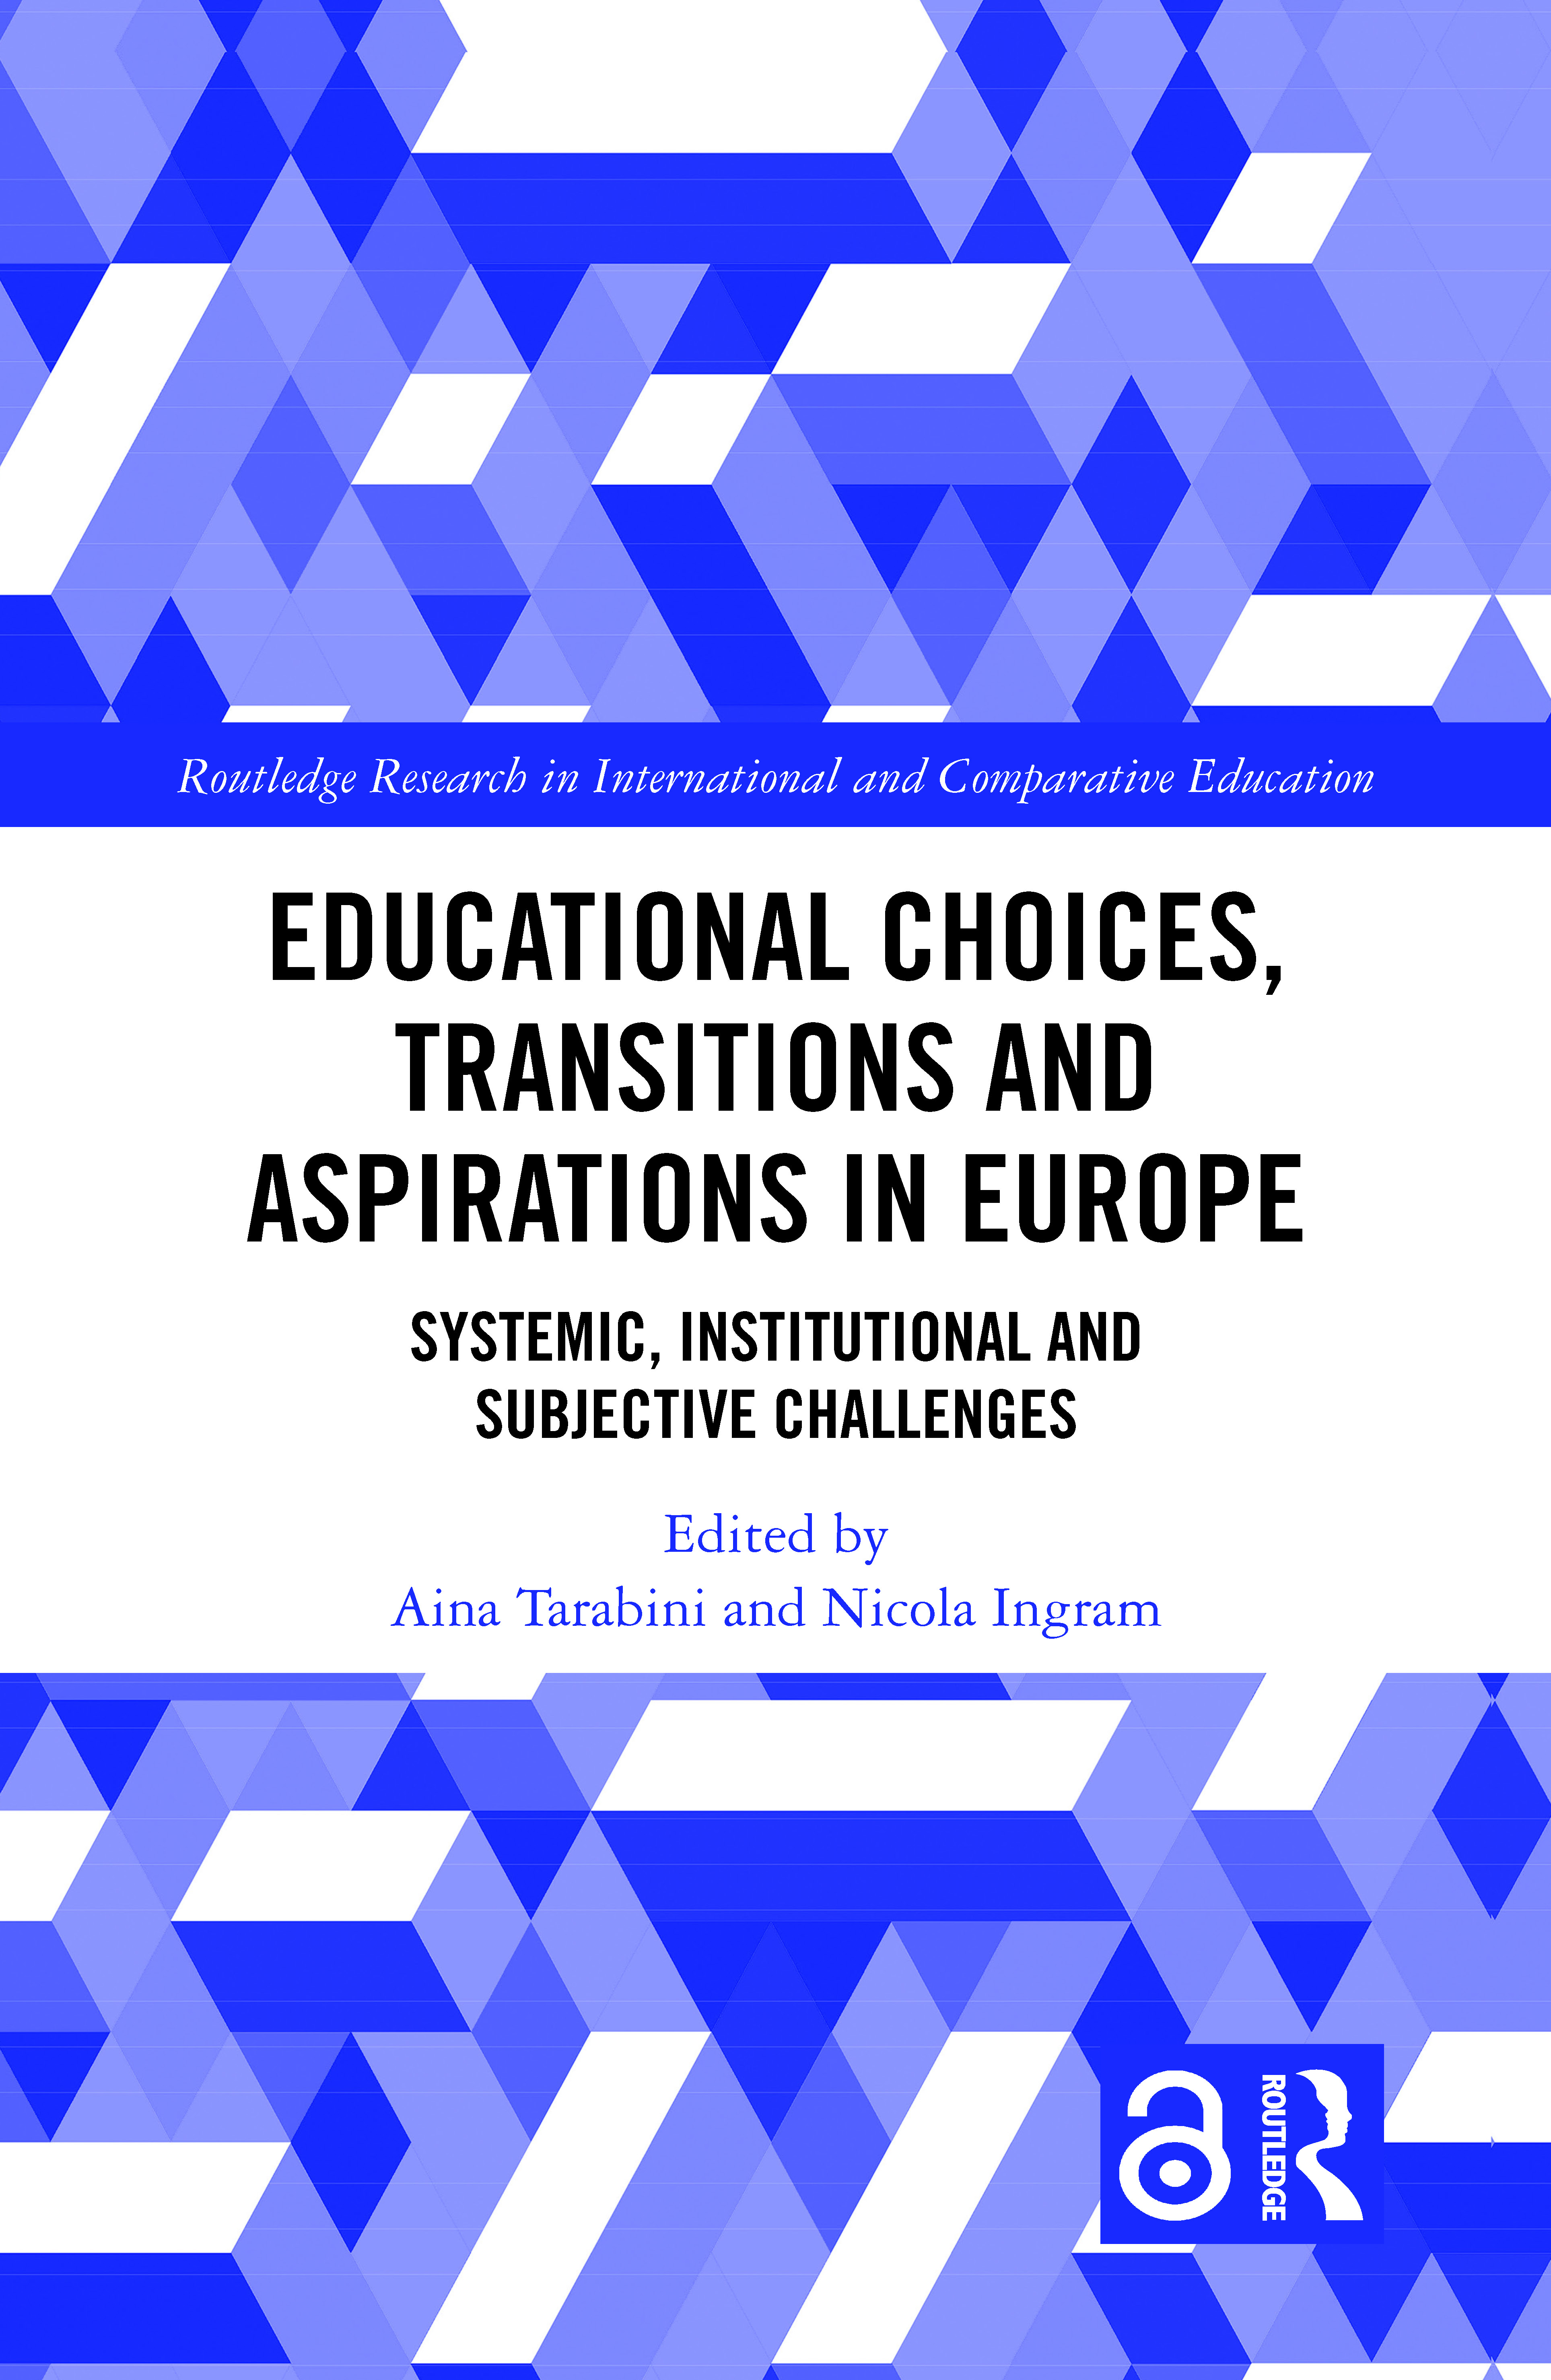 Educational Choices, Transitions and Aspirations in Europe: Systemic, Institutional and Subjective Challenges book cover